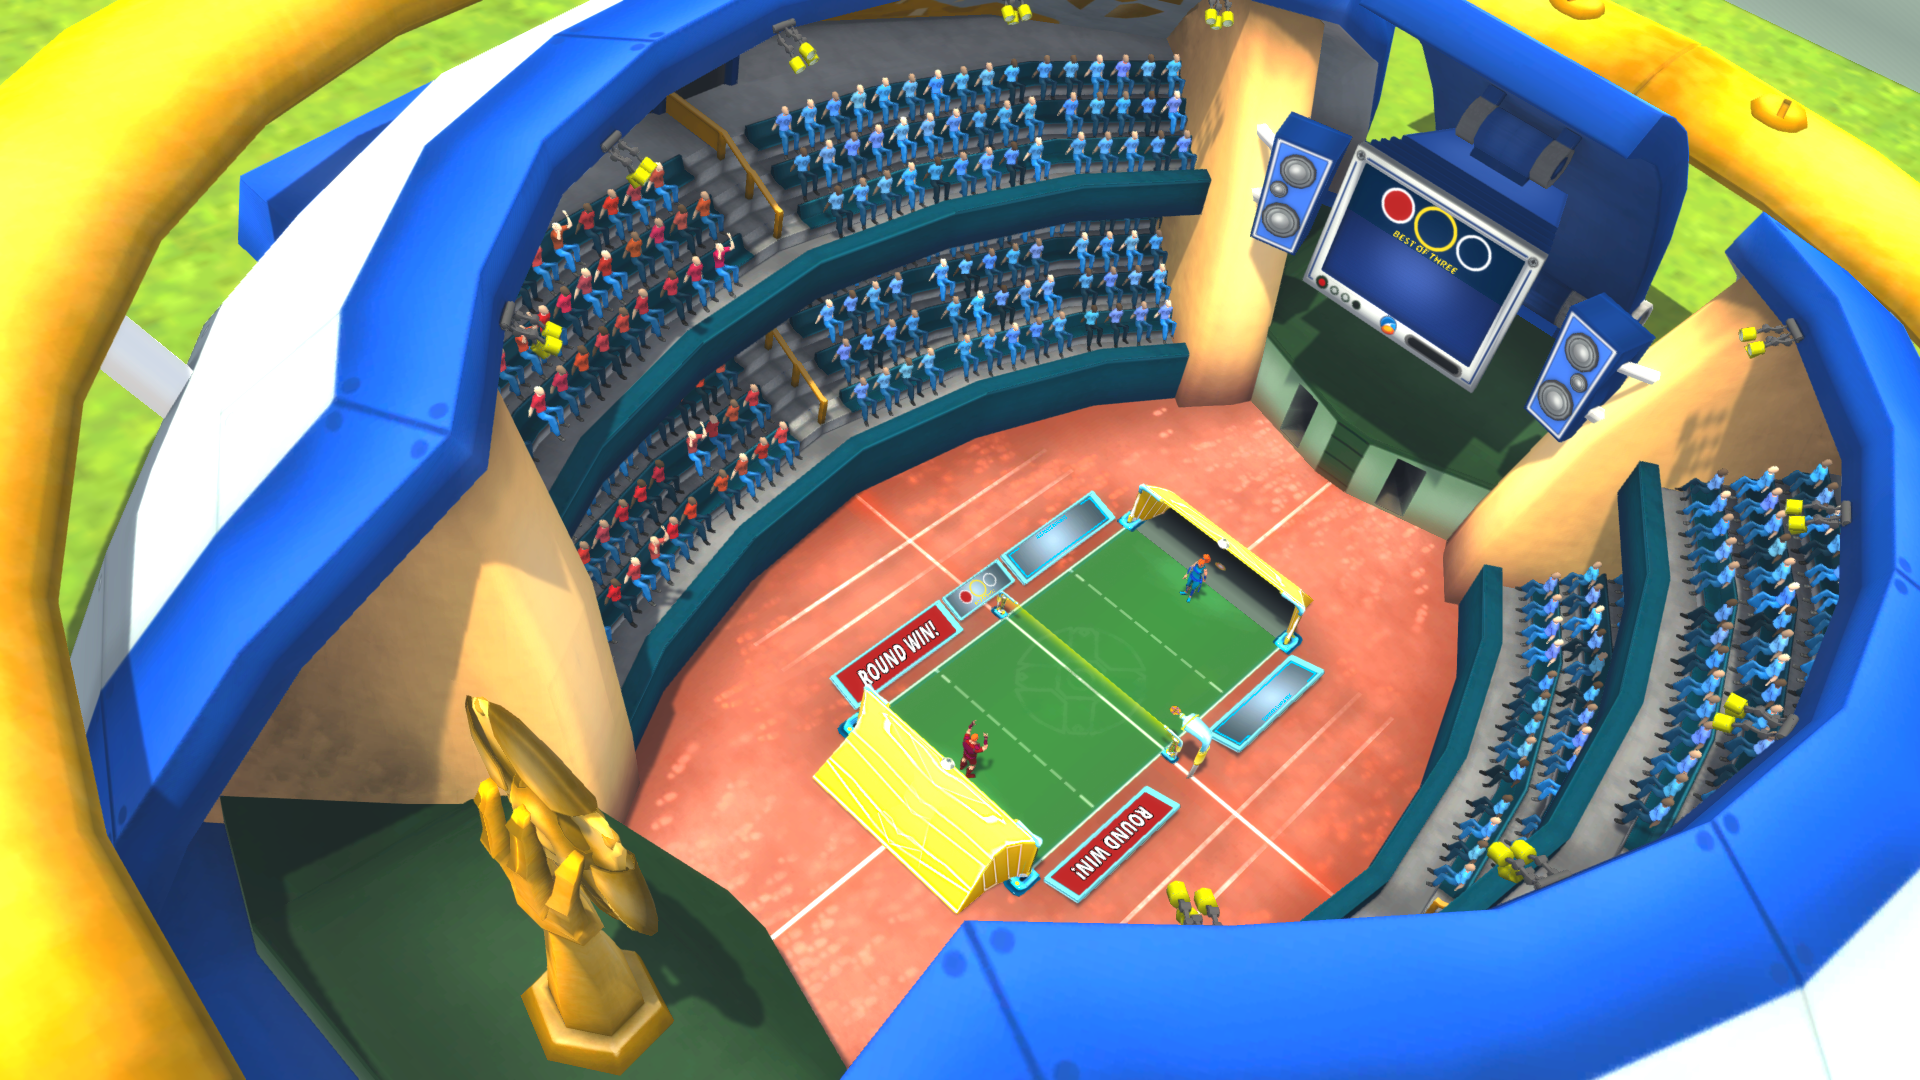 The Gyrodisc Stadium